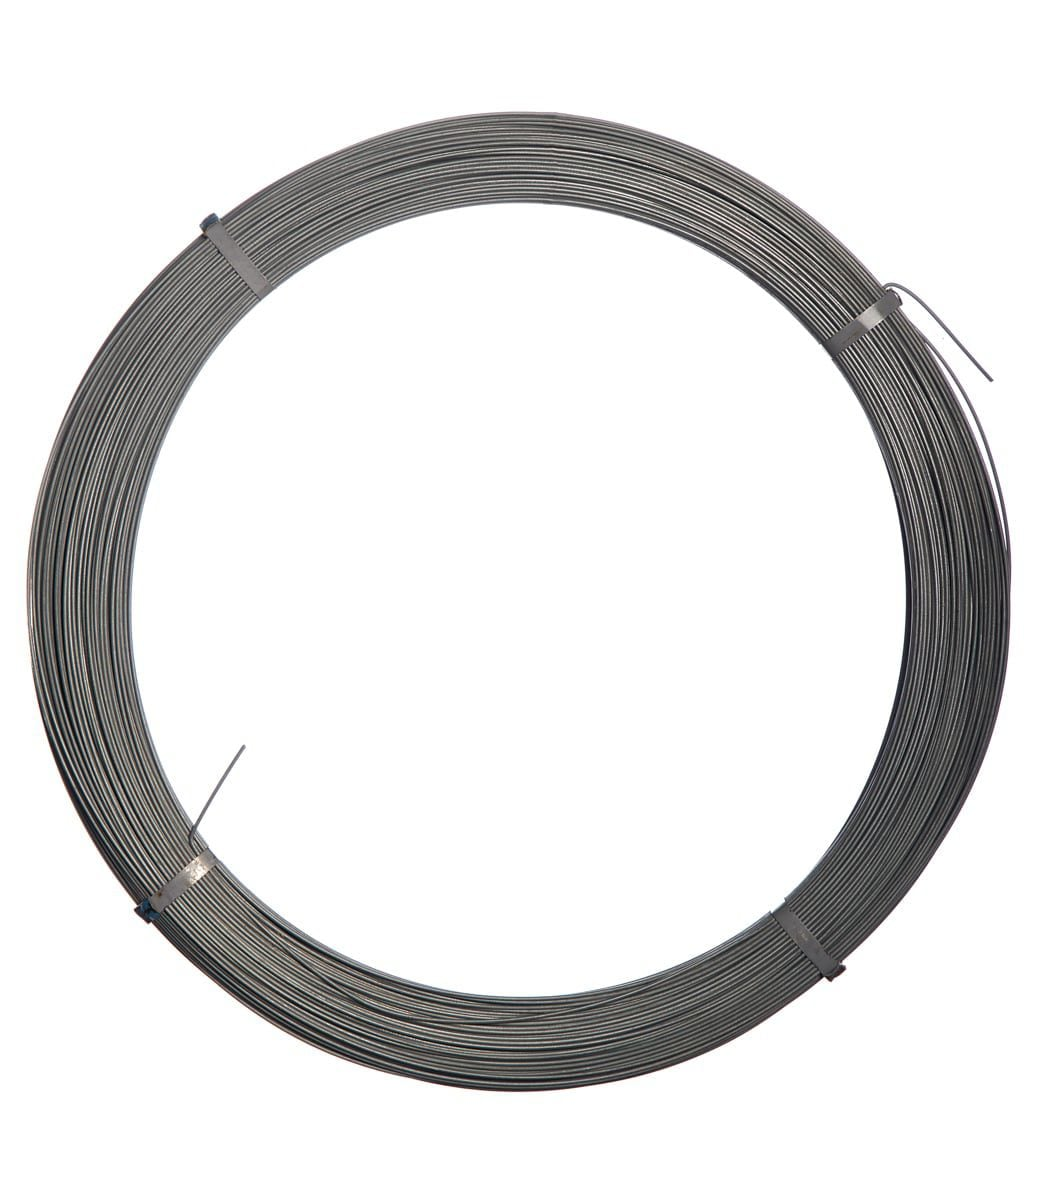 ironwire stick 22mm cutted 500mm galv